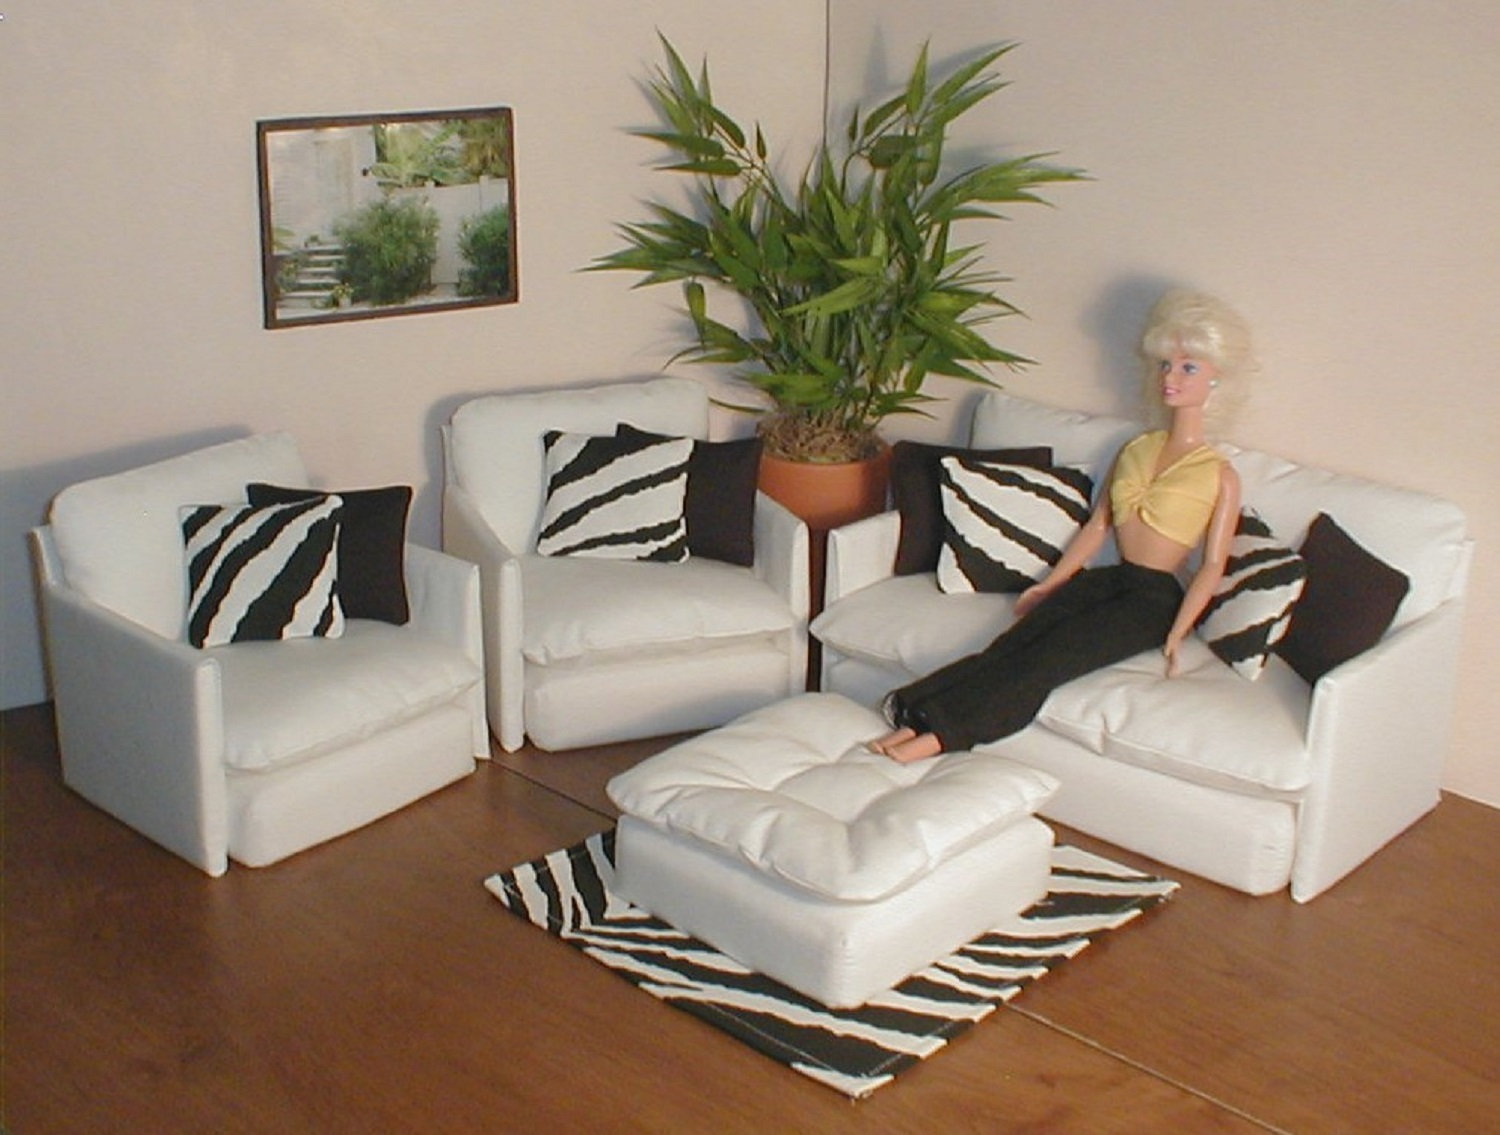 Barbie Doll Furniture White Living Room Set W Black And Zebra Etsy throughout 13 Some of the Coolest Ways How to Make White Living Room Sets